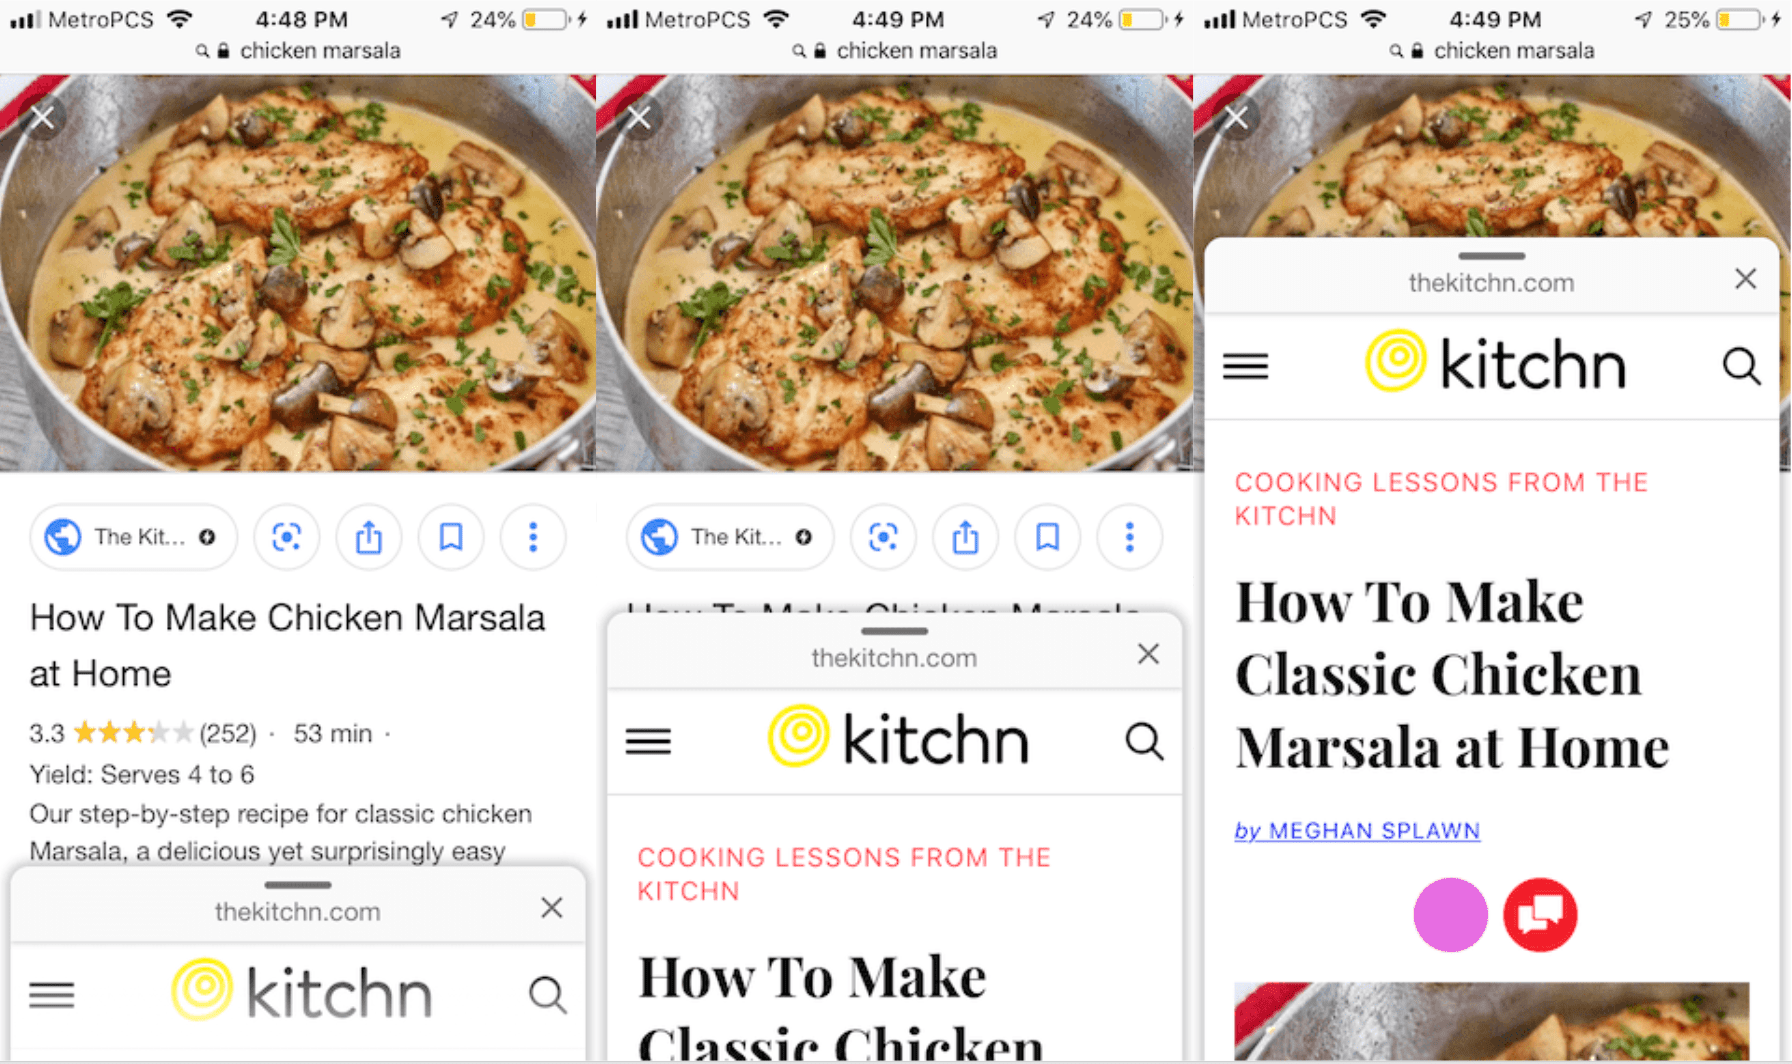 Google's New Update to Image Search: Swipe to Visit